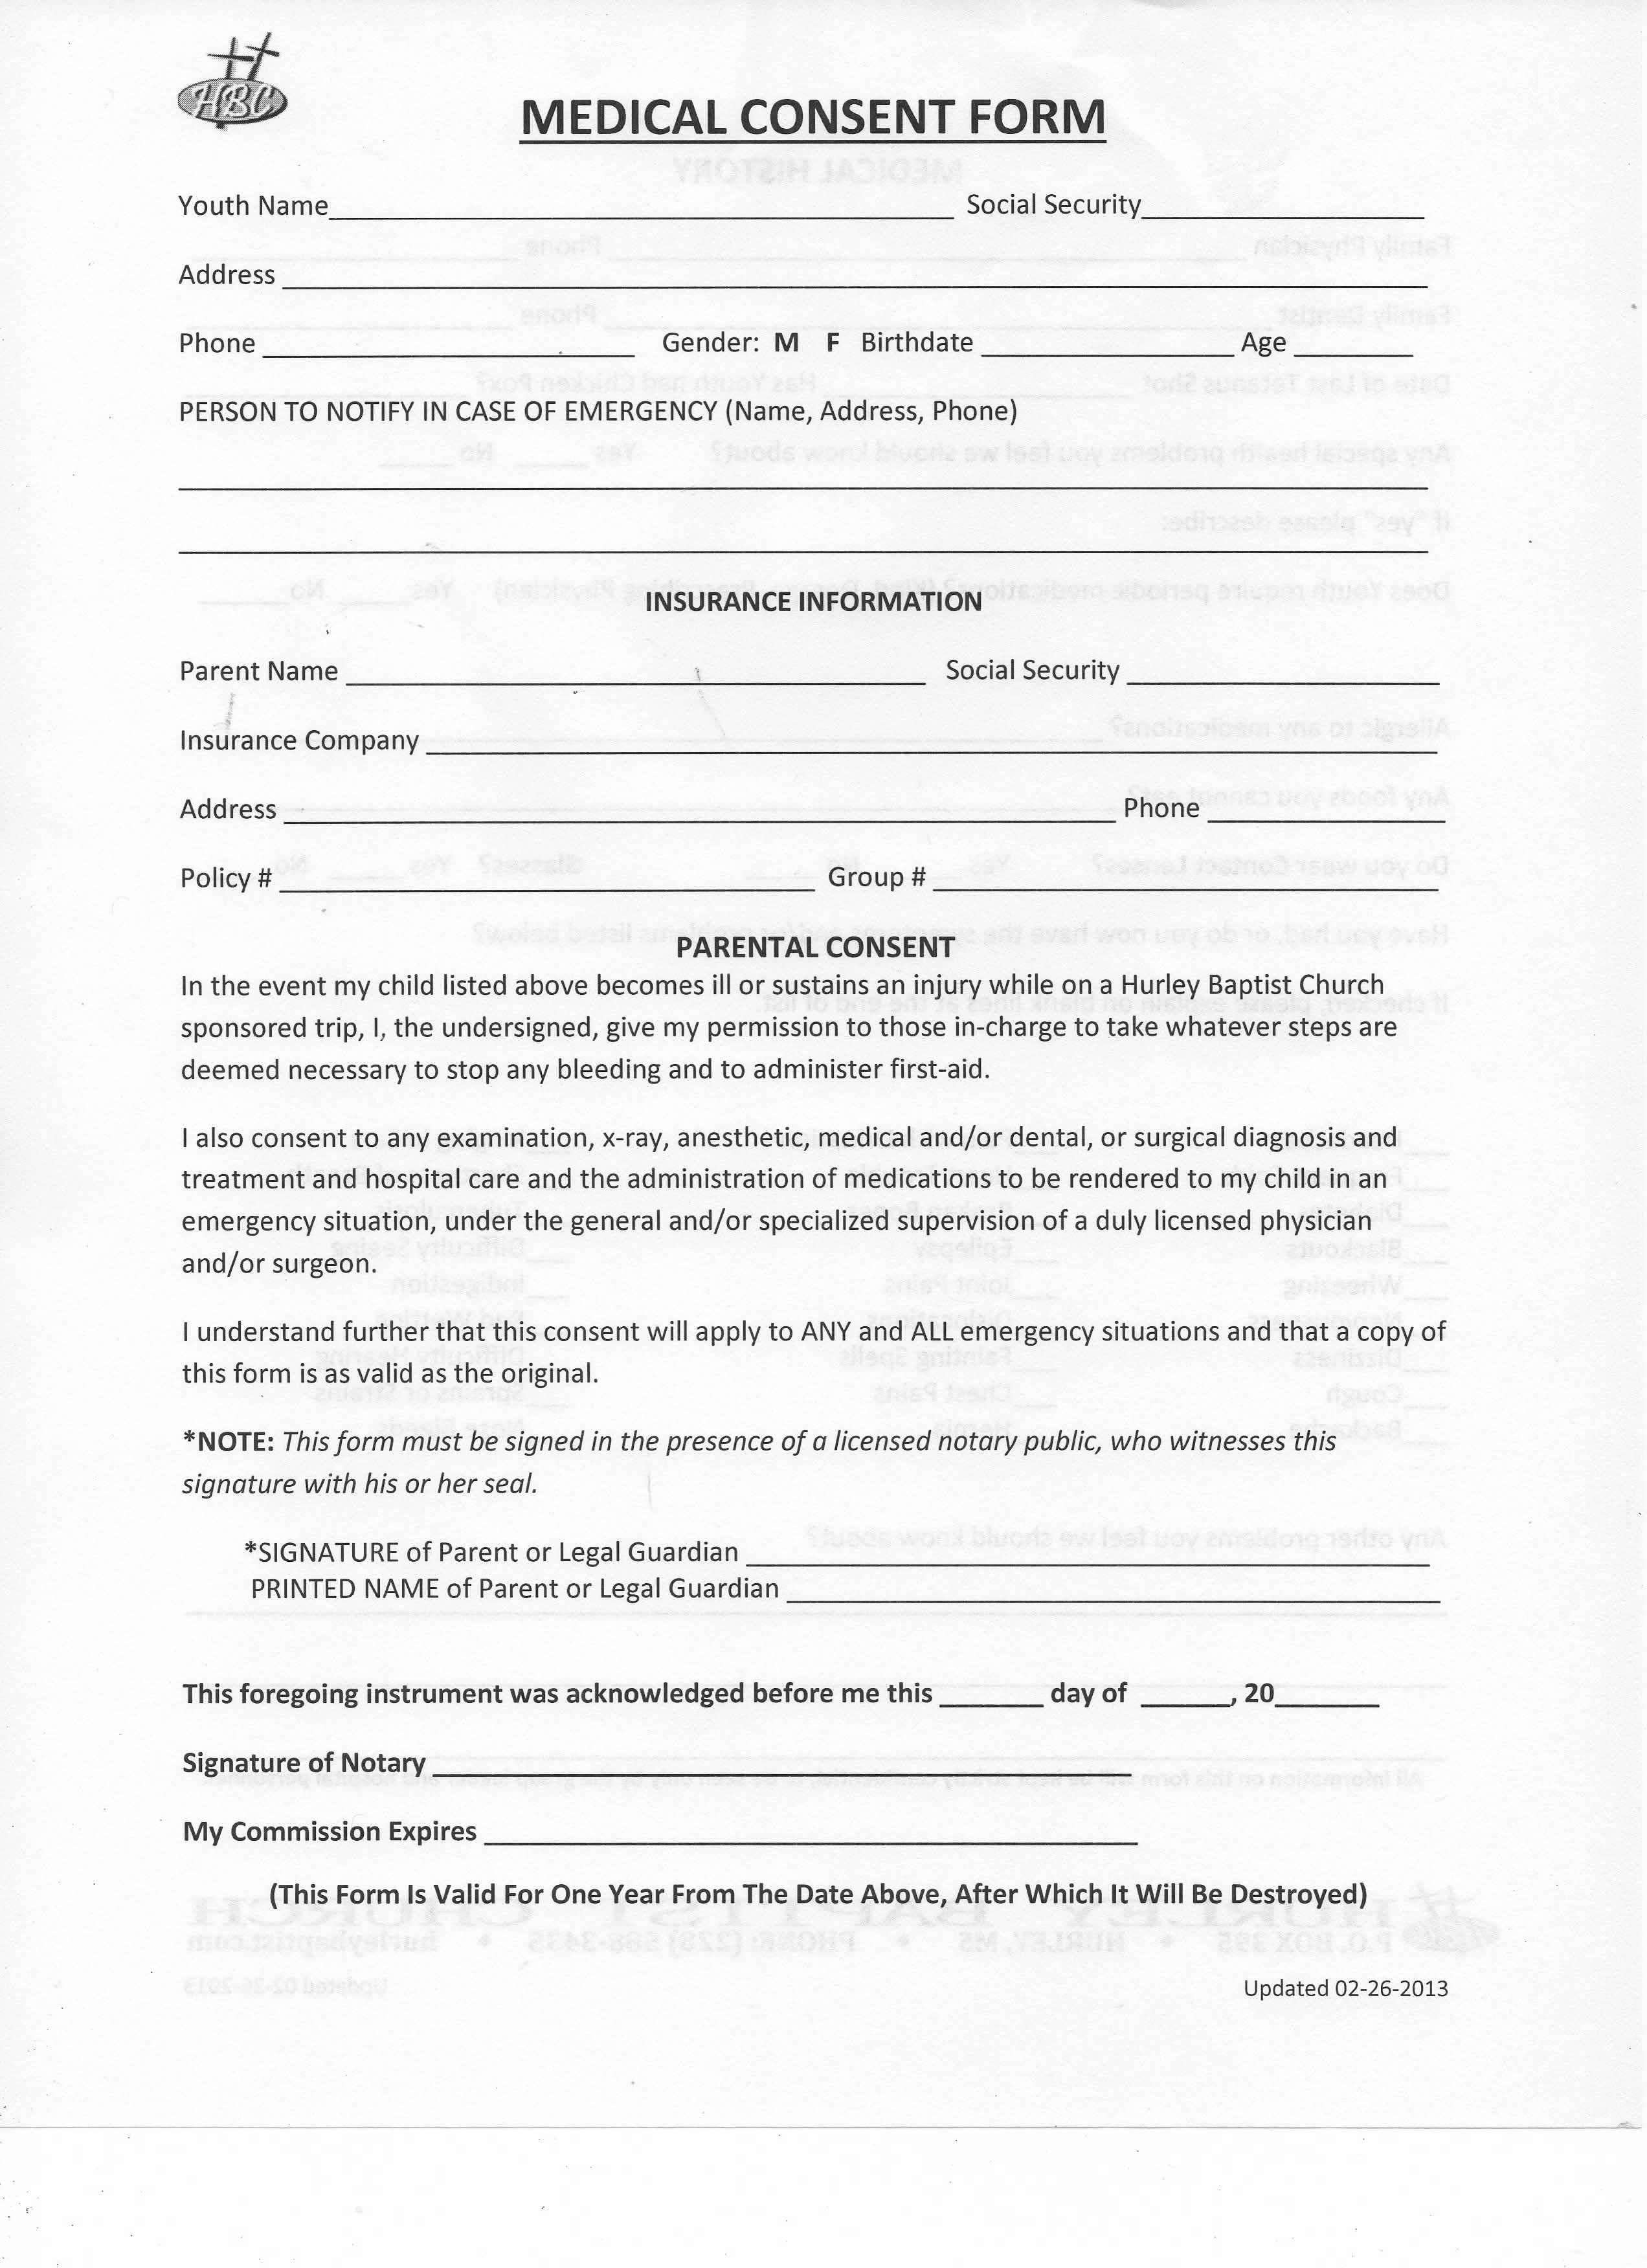 Nice Medical Consent Form (Front)   PDF File   Docx File   JPG File